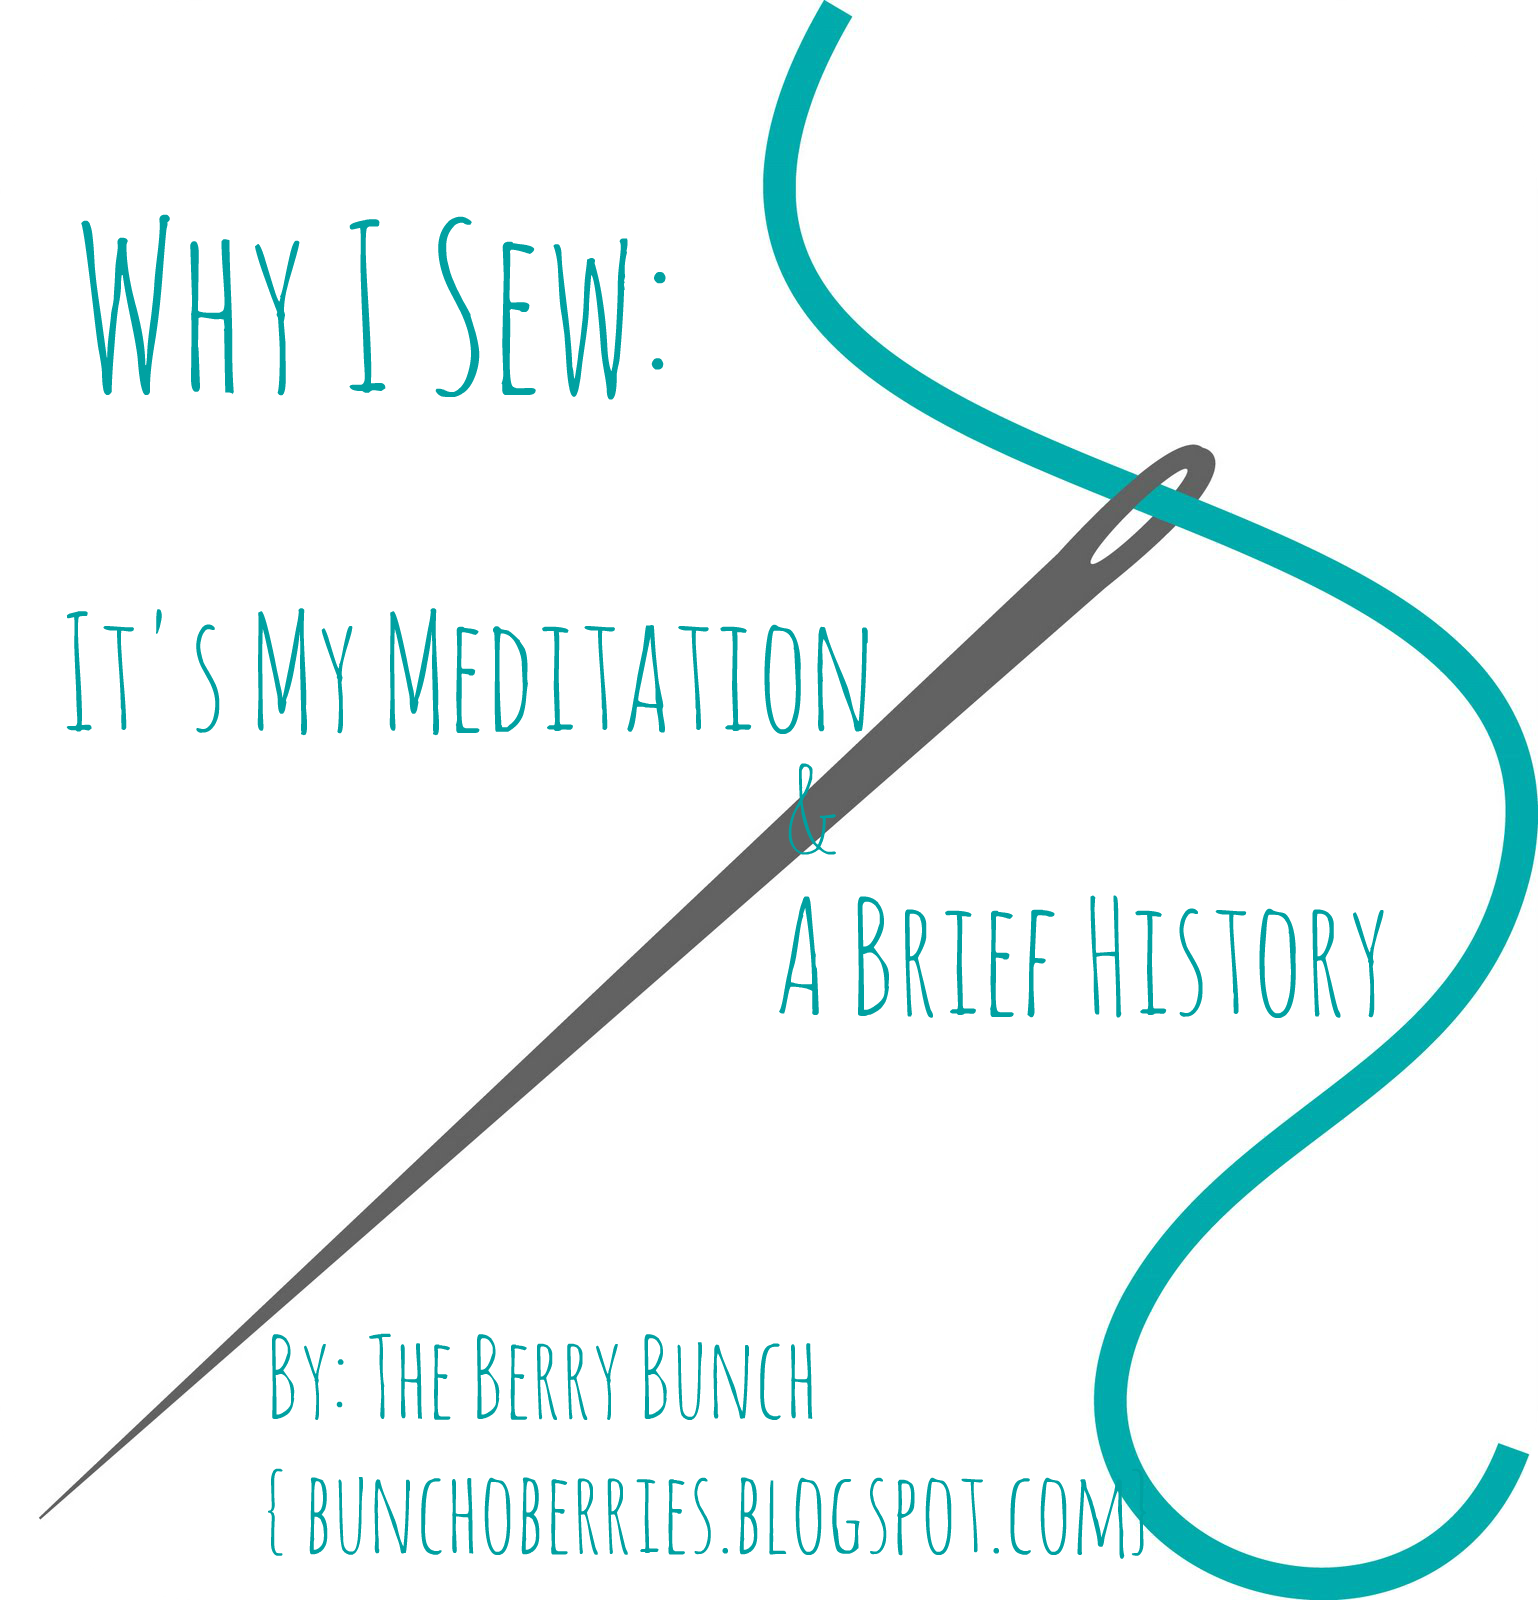 The Berry Bunch: Why I Sew: It's My Meditation and Some of my History